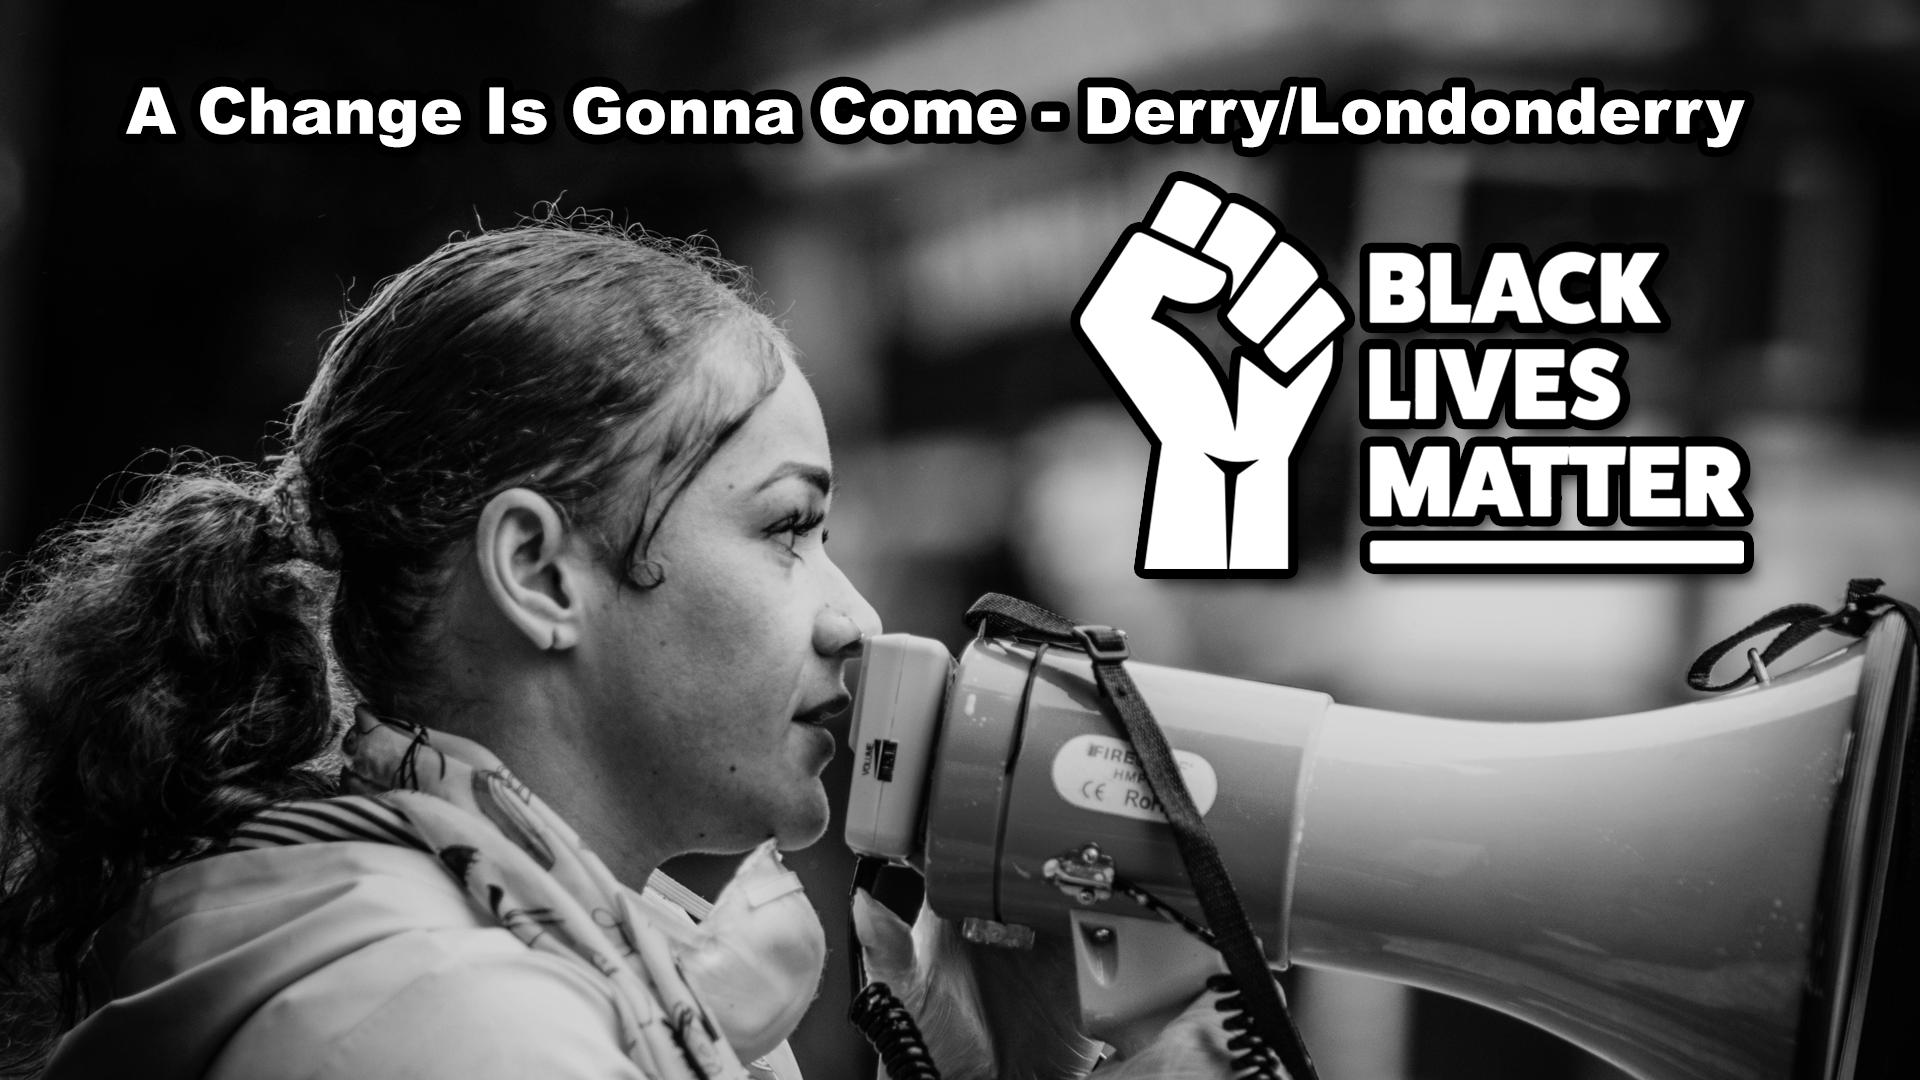 Black Lives Matter, A Change Is Gonna Come. Derry/Londonderry